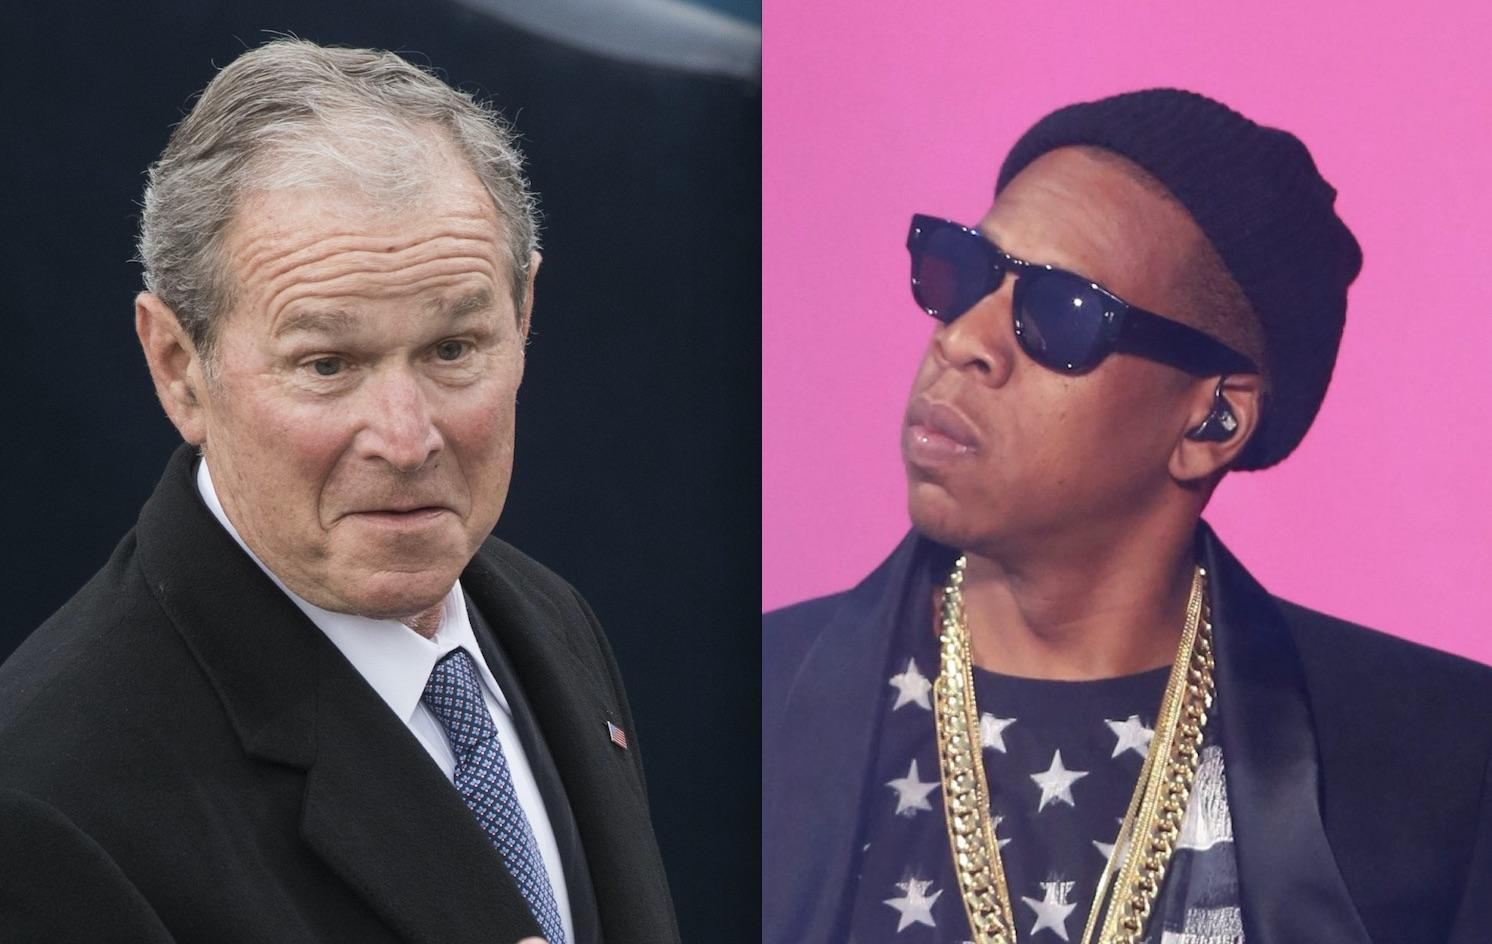 George W. Bush Has No Idea Who Jay Z Is